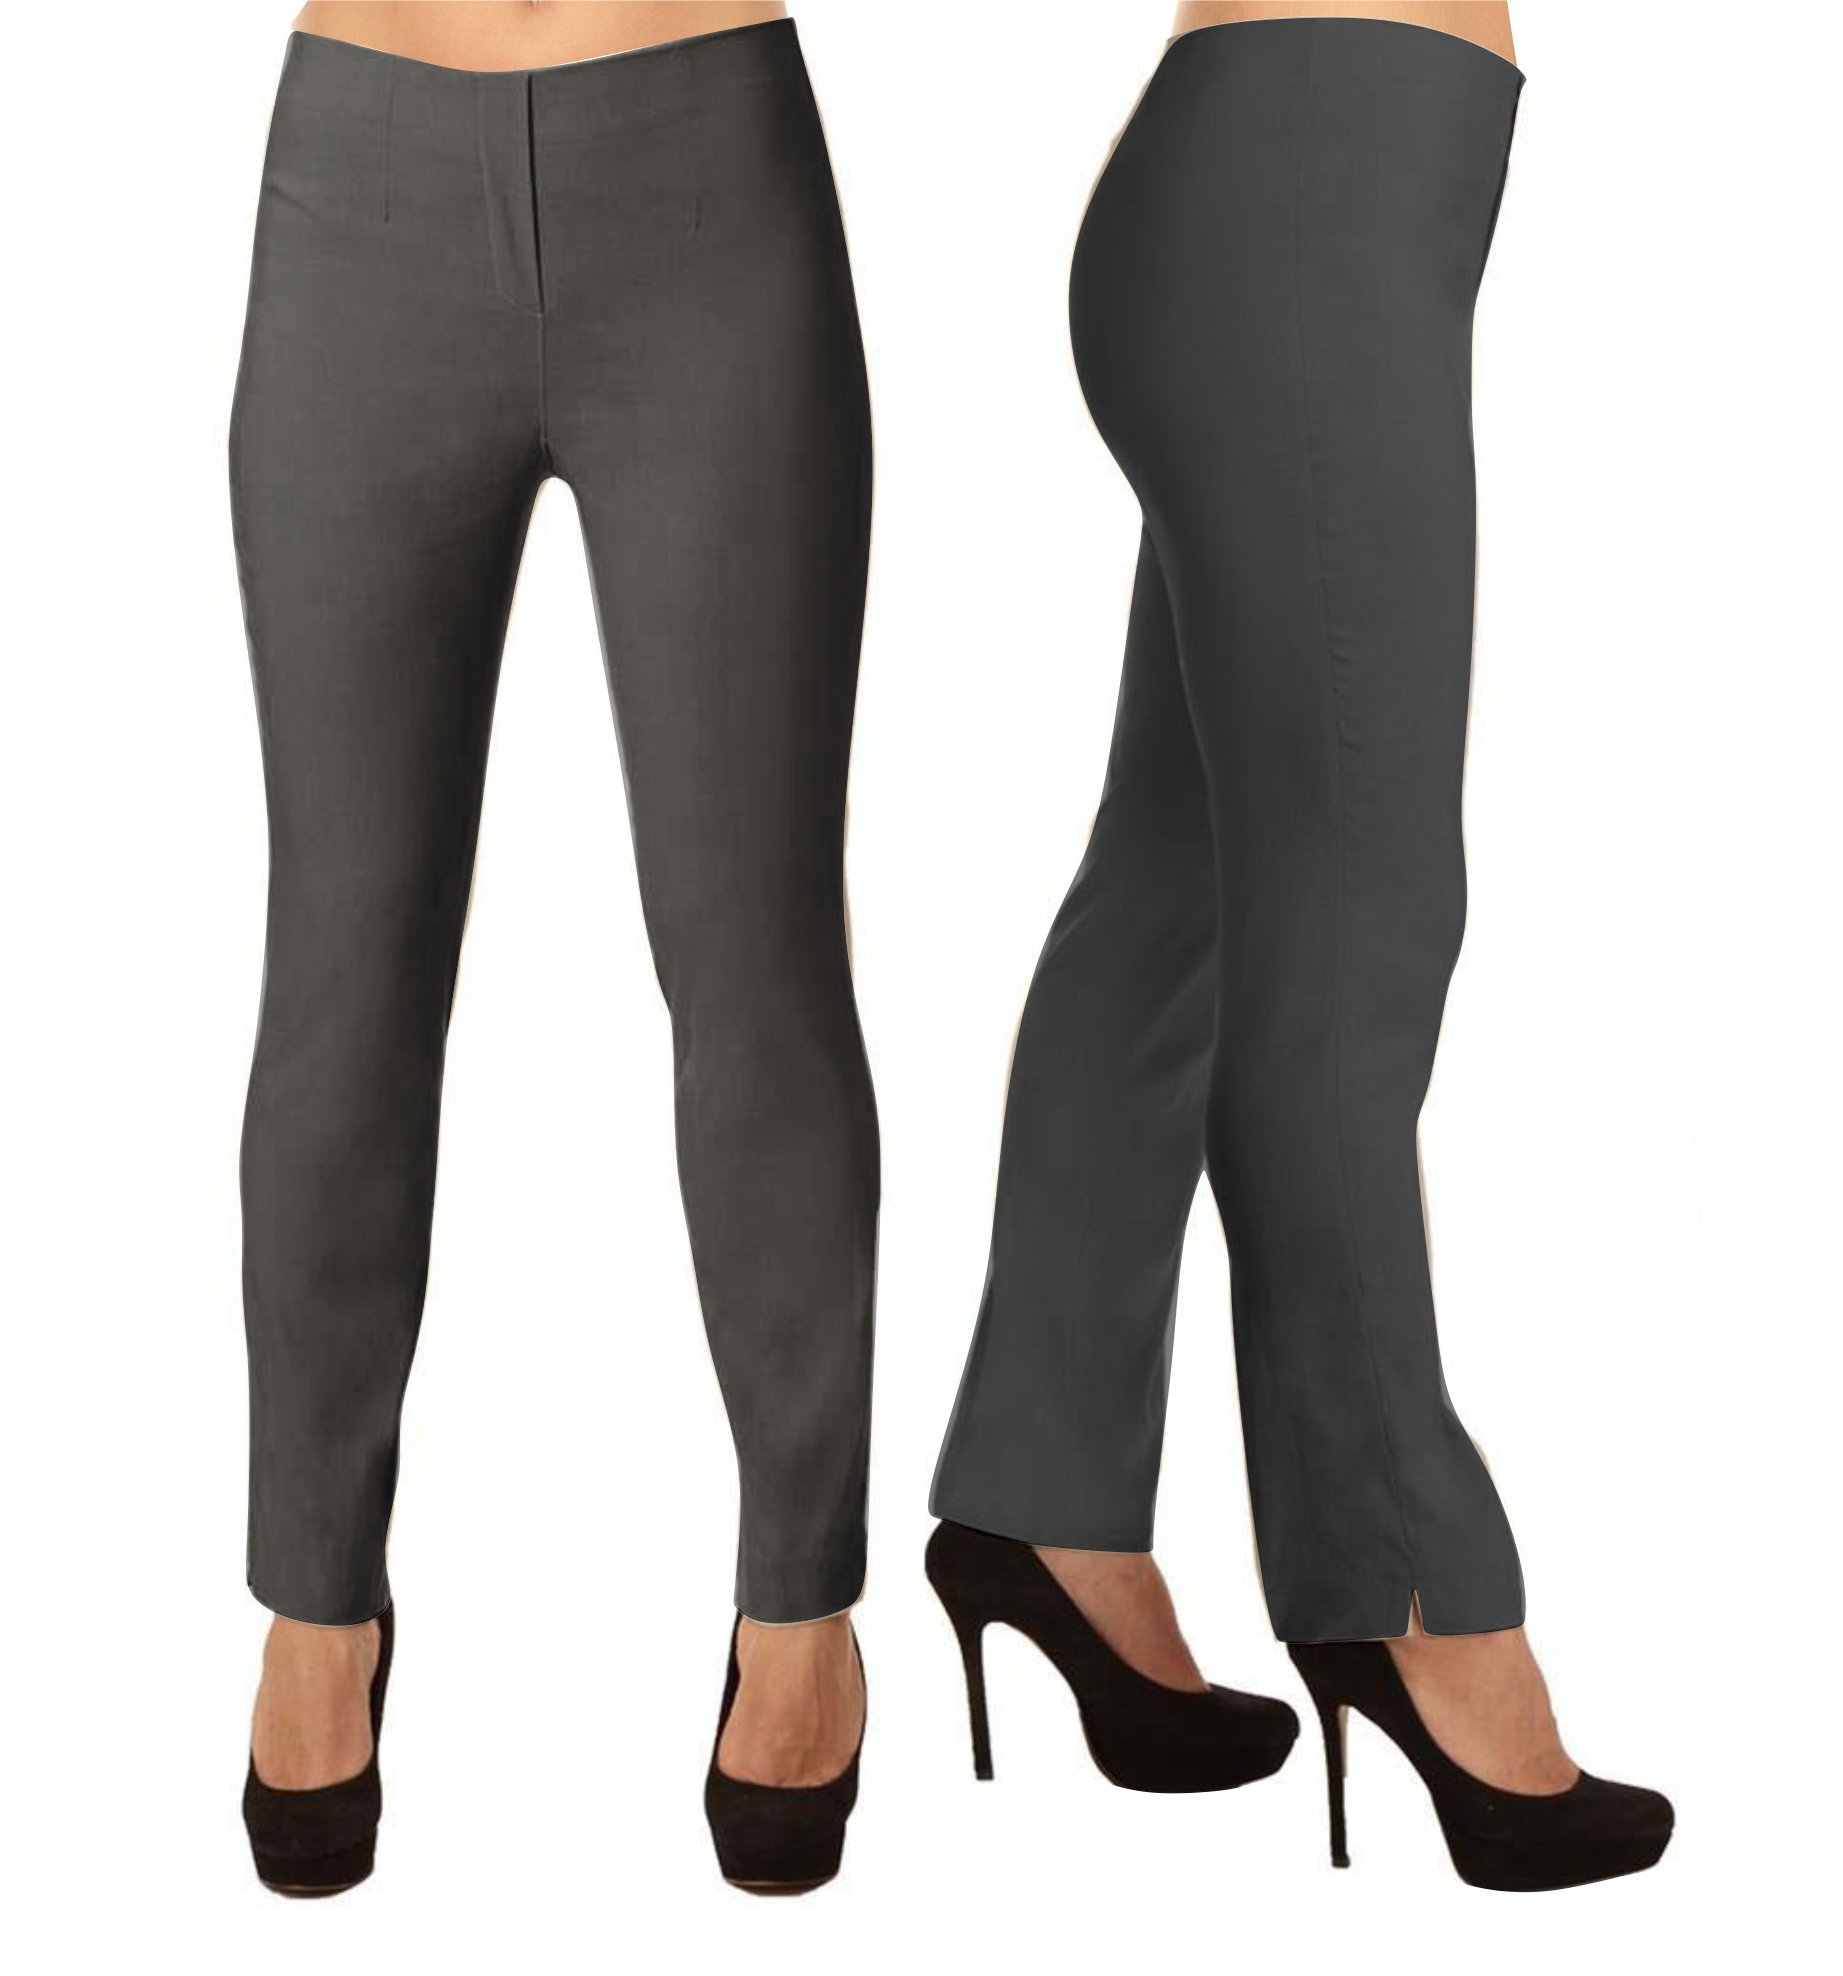 Lior Paris LIZE a Classic Fit Straight Pant For EveryBody. (6, Charcoal)